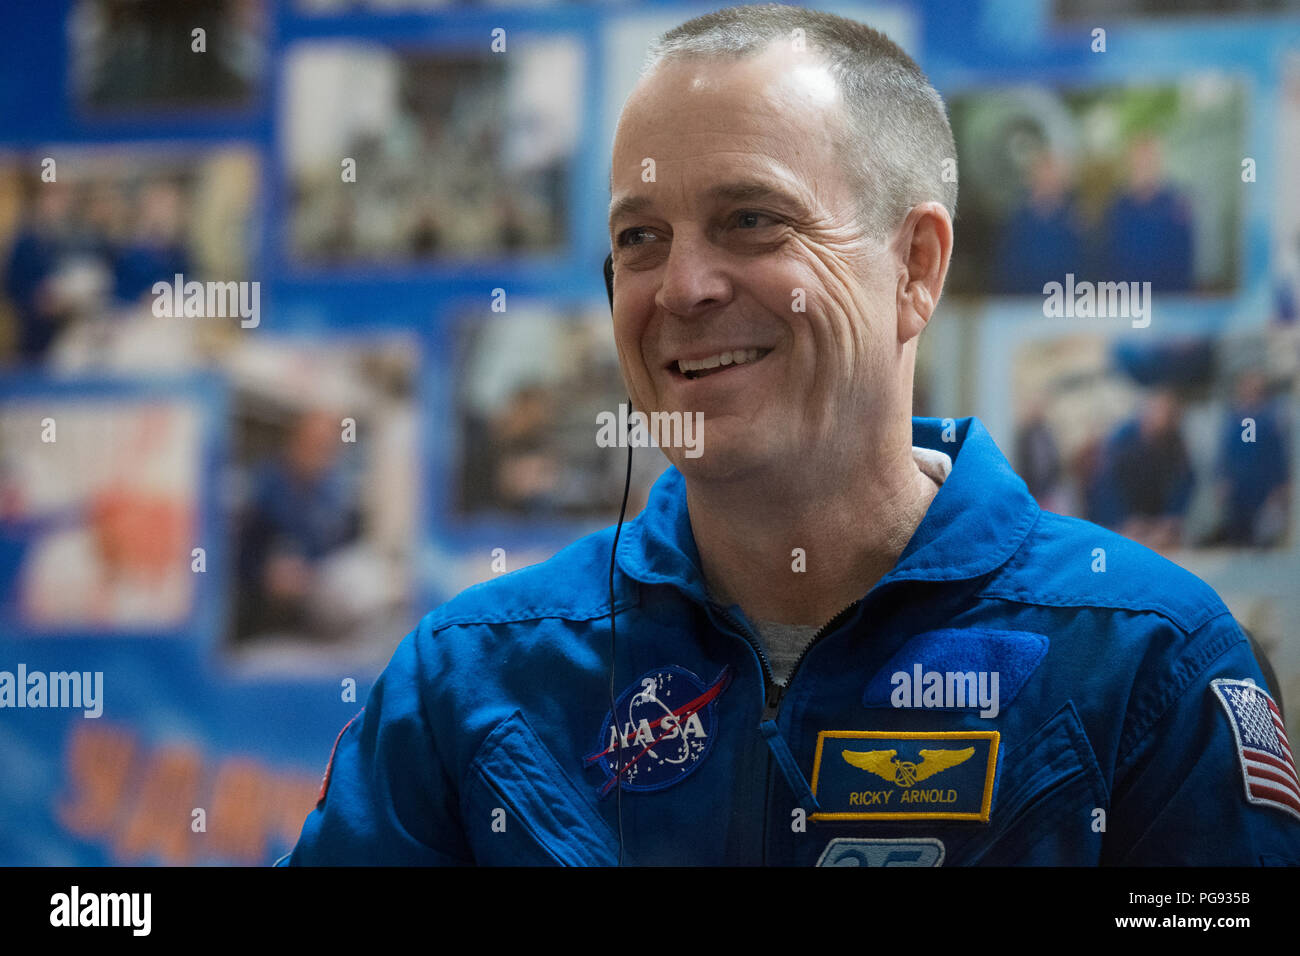 Expedition 55 flight engineer Ricky Arnold of NASA is seen in quarantine, behind glass, during a press conference, Tuesday, March 20, 2018 at the Cosmonaut Hotel in Baikonur, Kazakhstan. Arnold, Soyuz Commander Oleg Artemyev of Roscosmos, flight engineer Drew Feustel of NASA are scheduled to launch to the International Space Station aboard the Soyuz MS-08 spacecraft on Wednesday, March, 21. - Stock Image